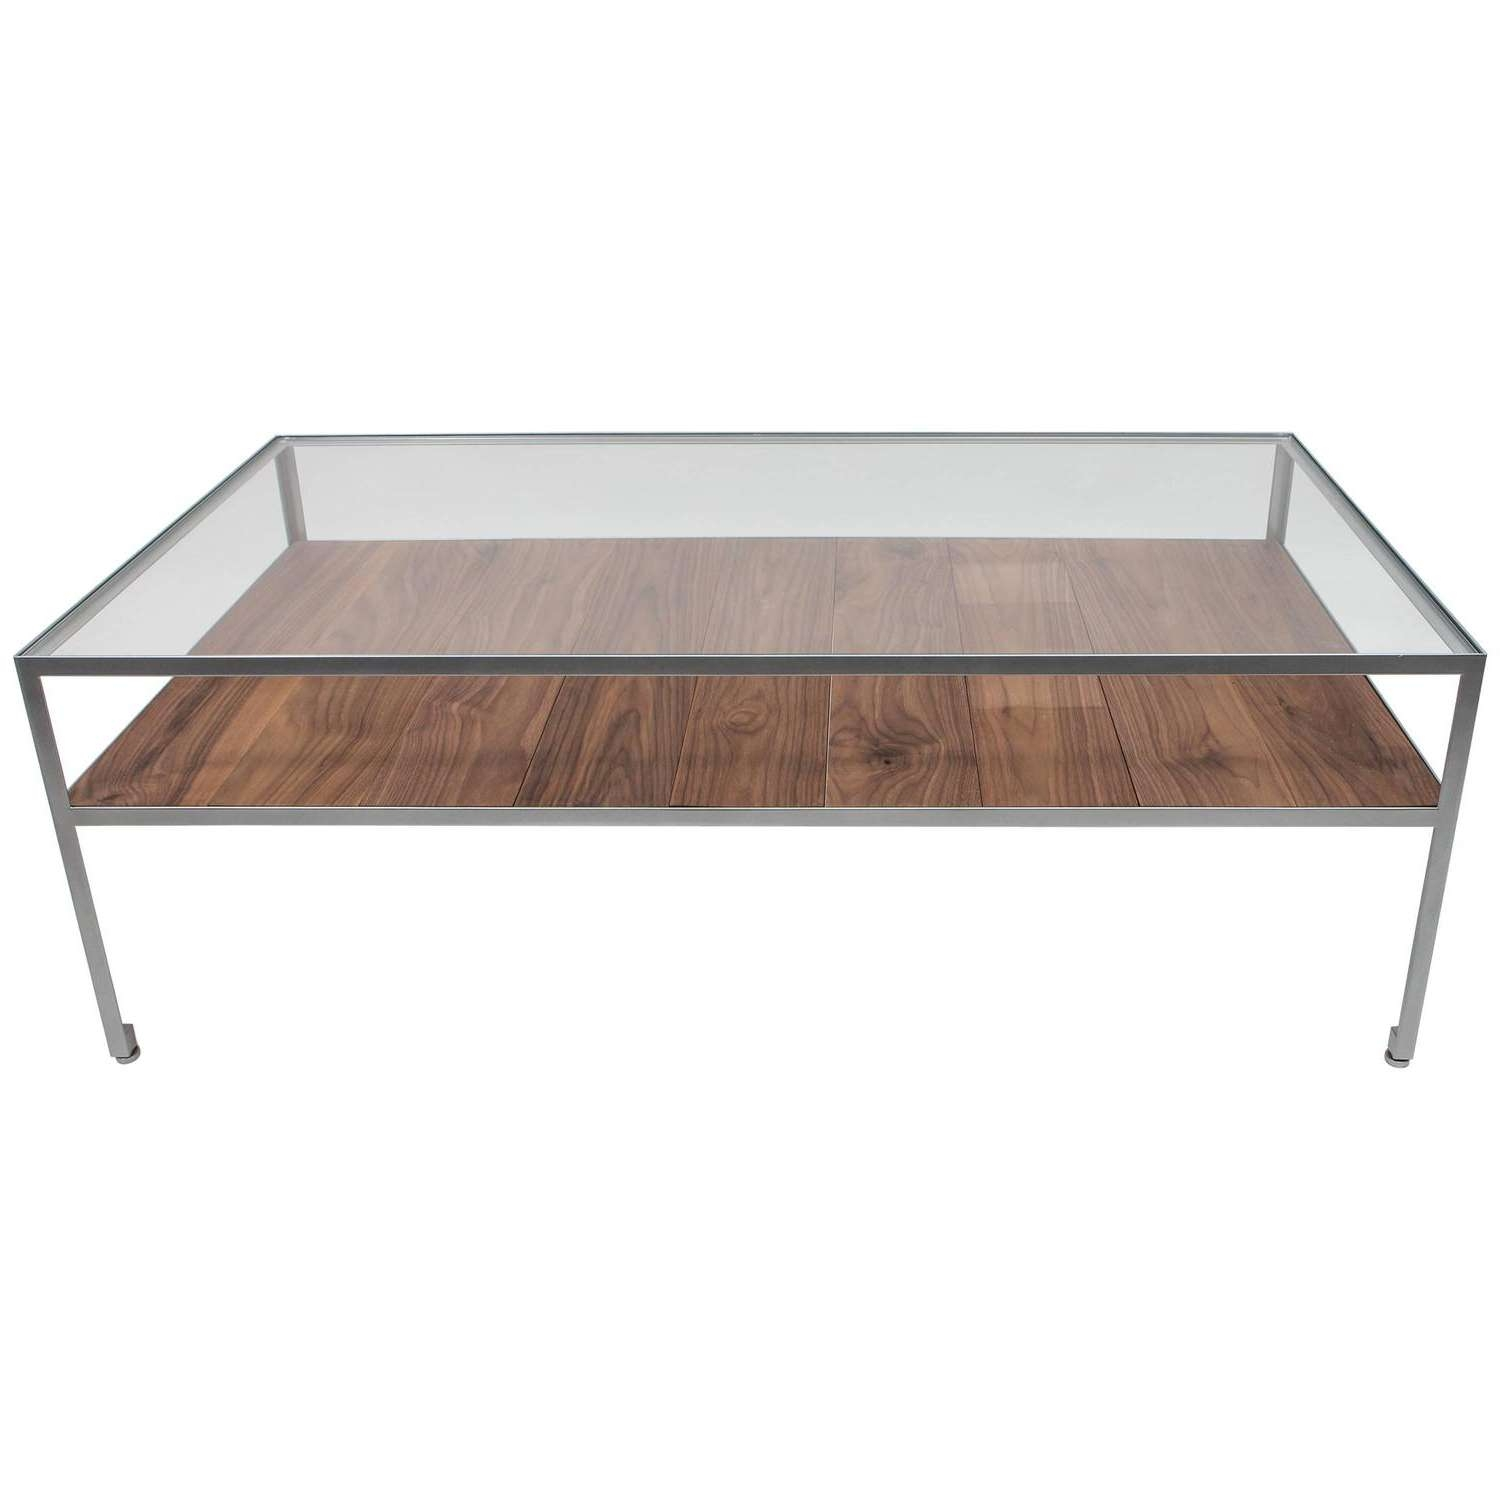 Round Nickel Over Steel Floating Glass Coffee Table For Sale At Intended For Latest Floating Glass Coffee Tables (View 7 of 20)